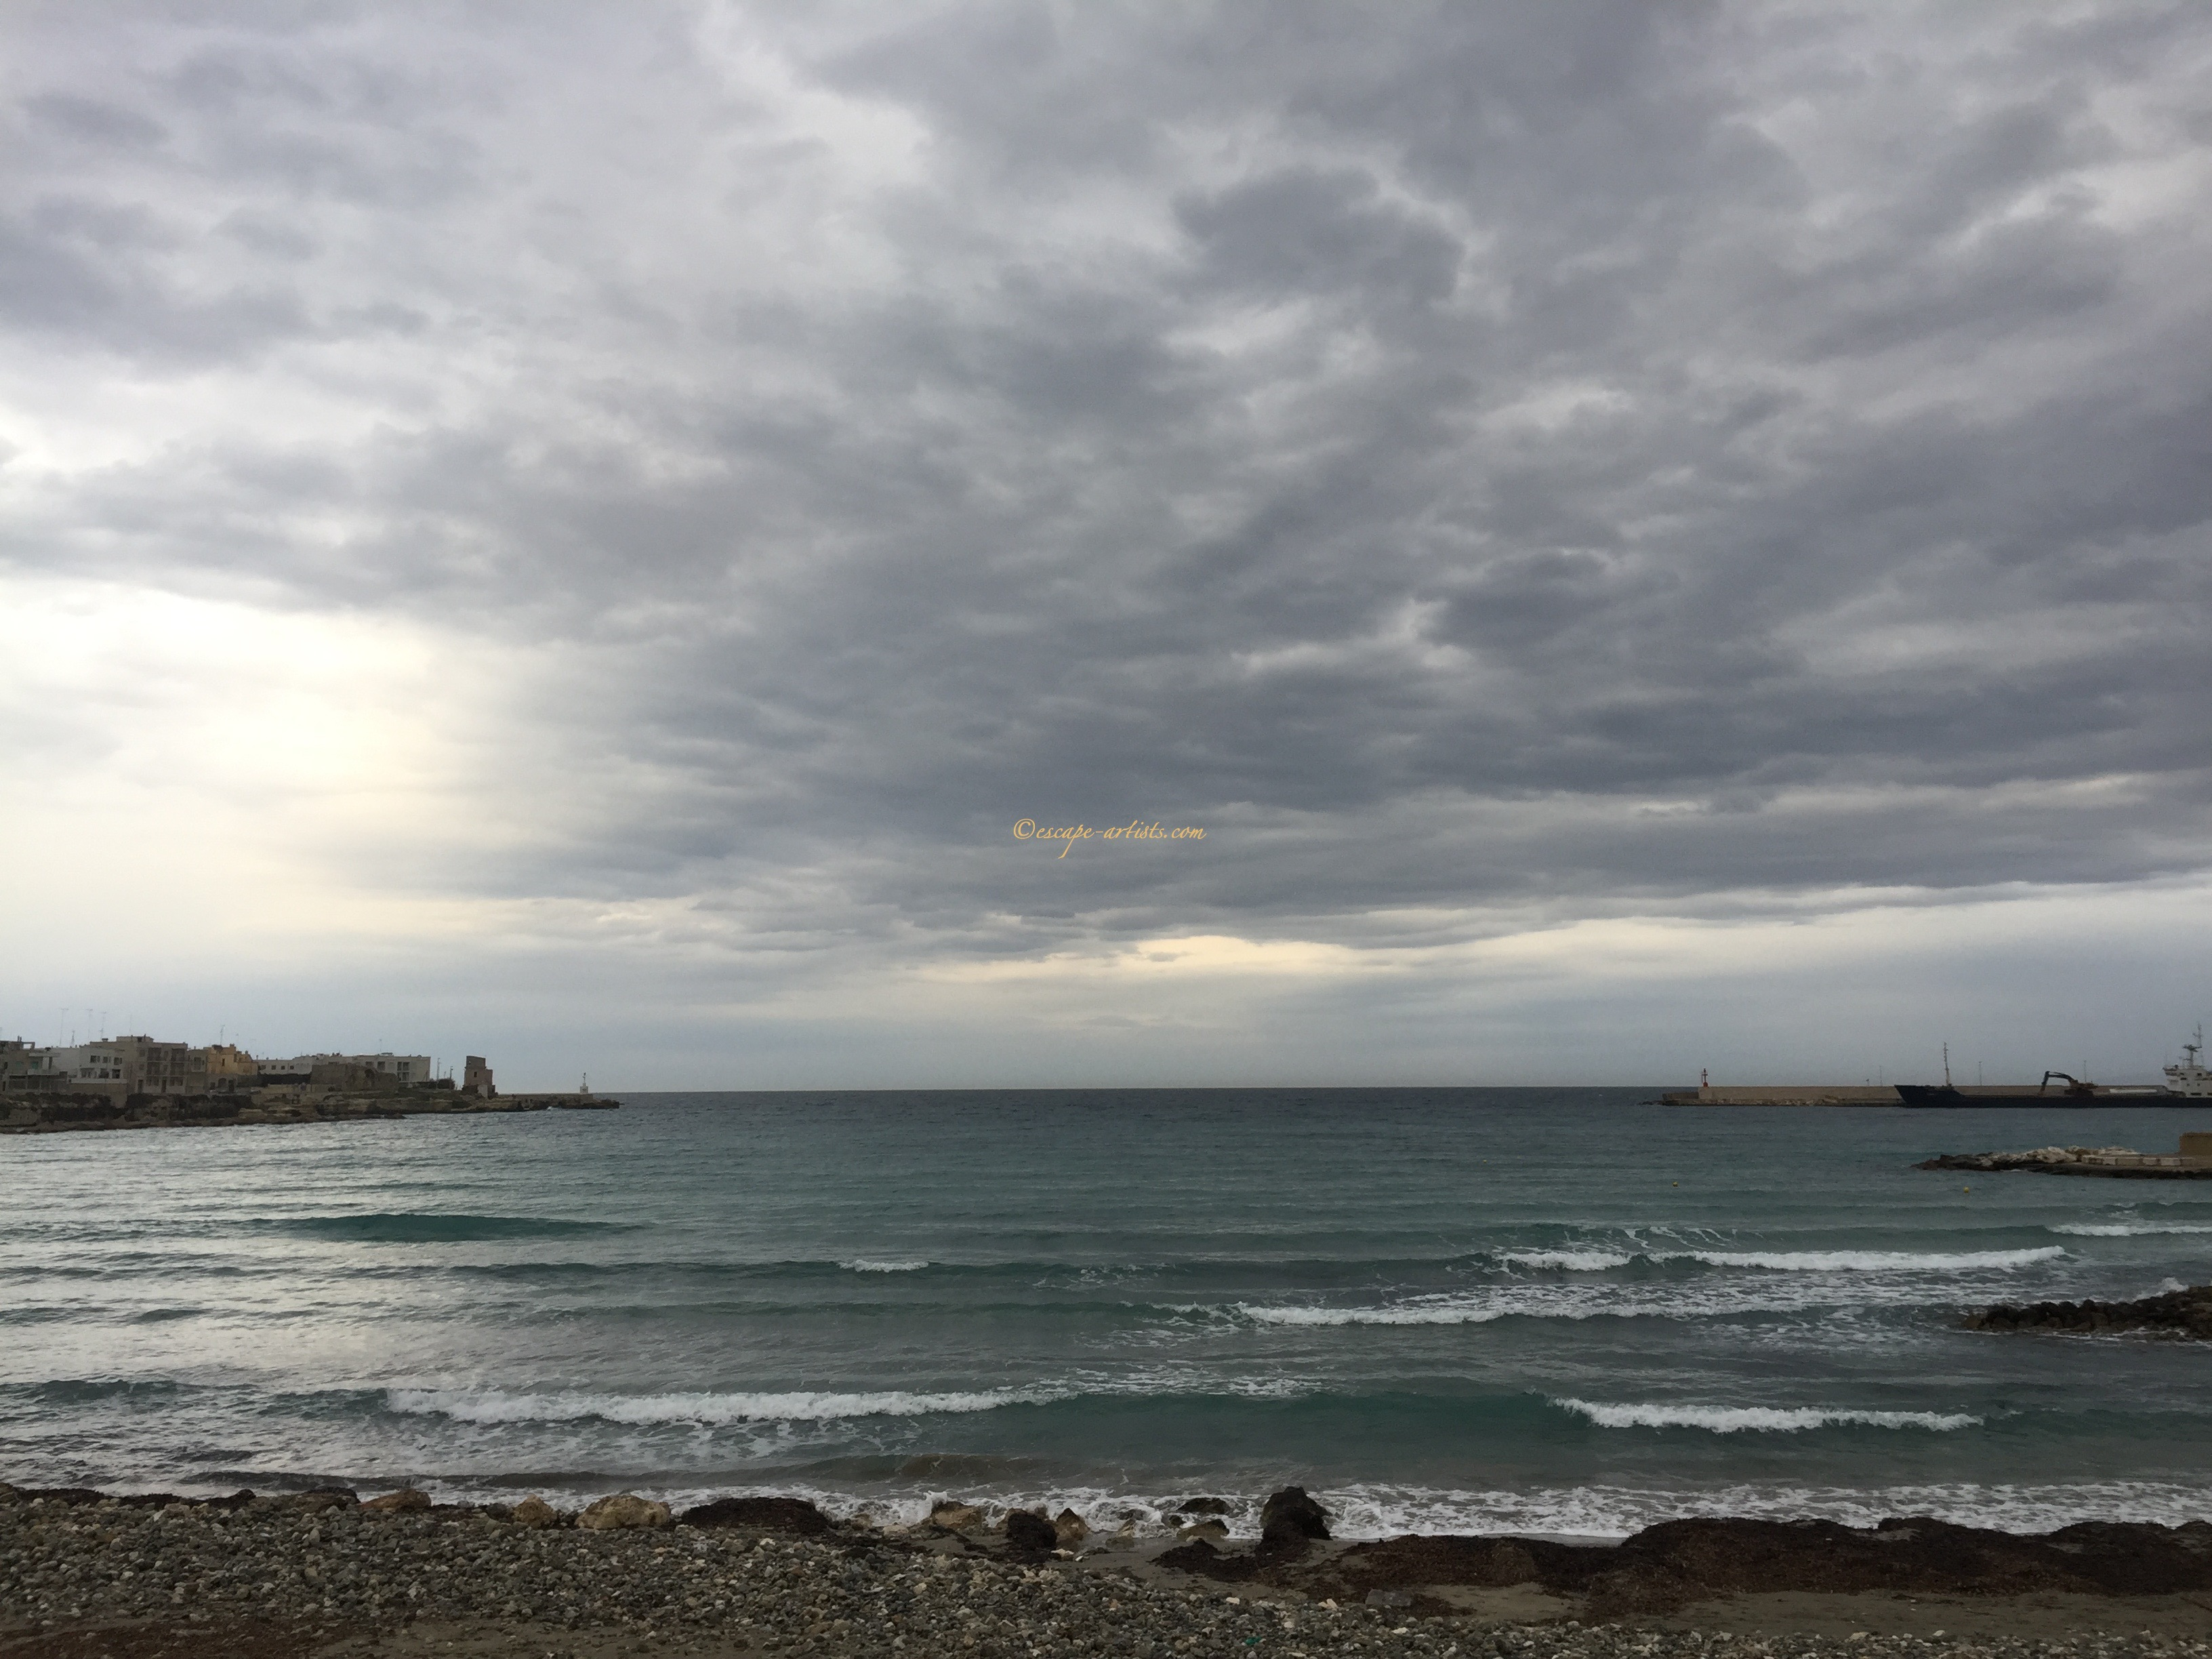 The water of Otranto after a storm